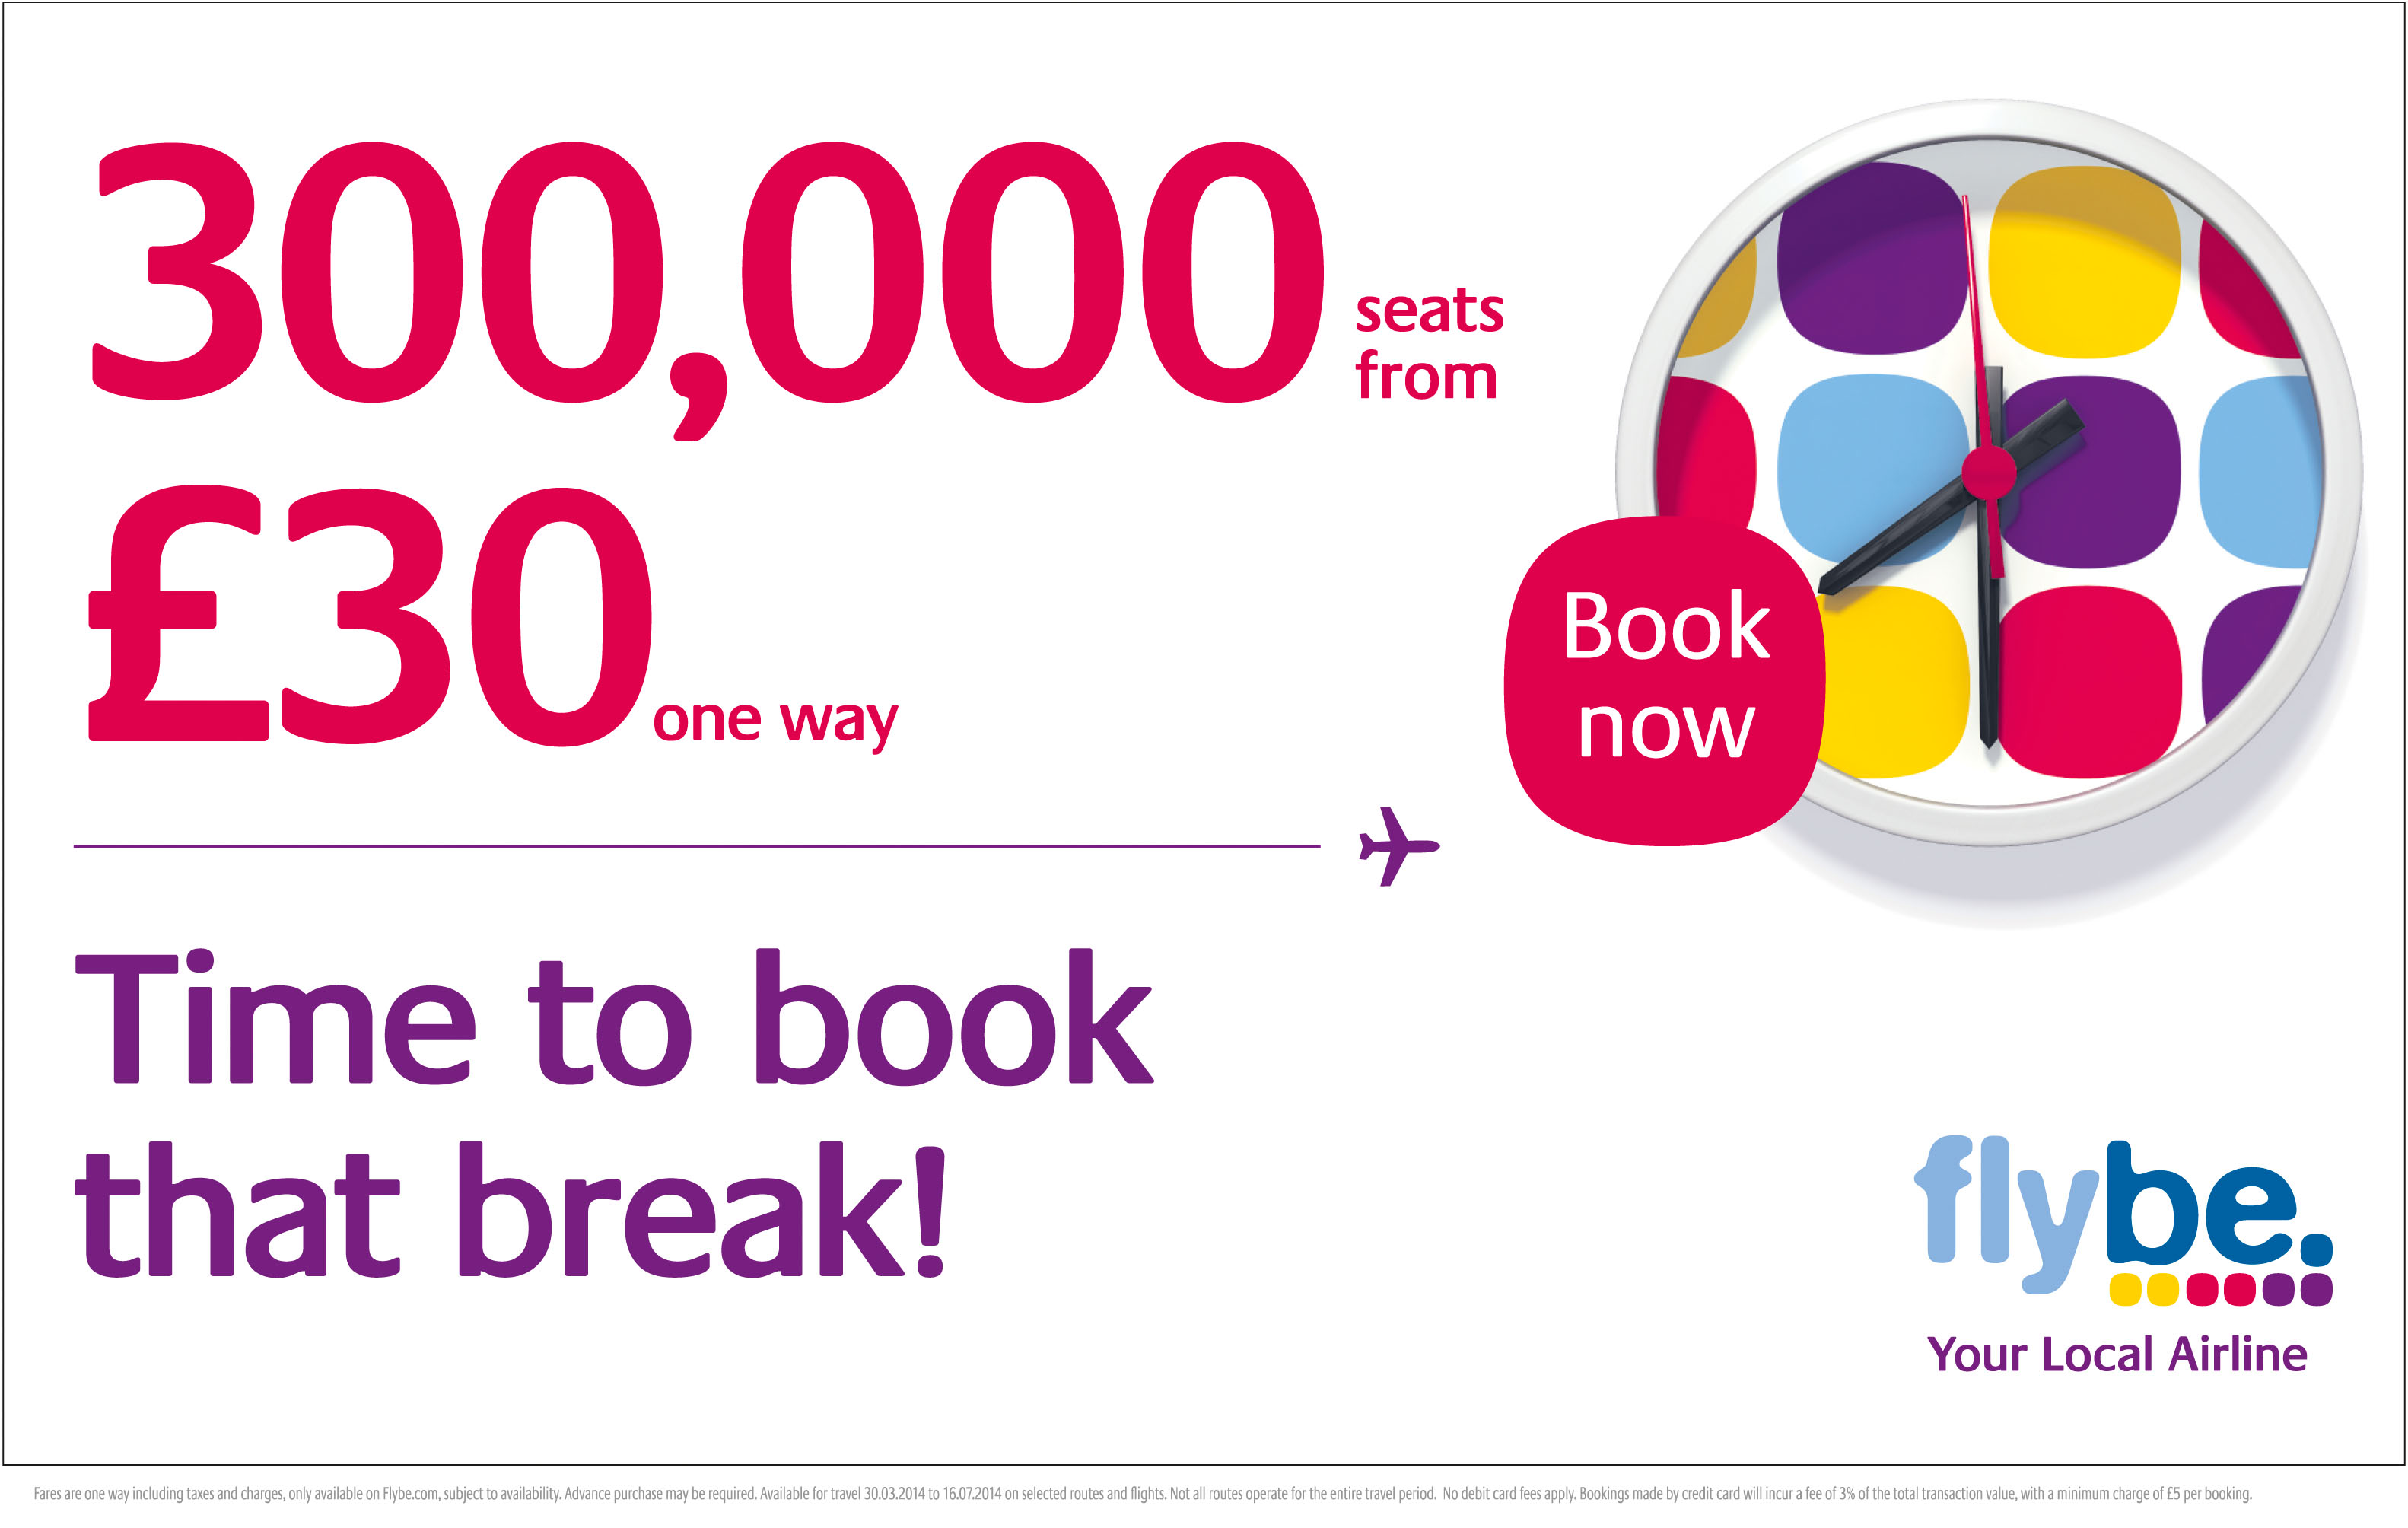 Flybe time to book